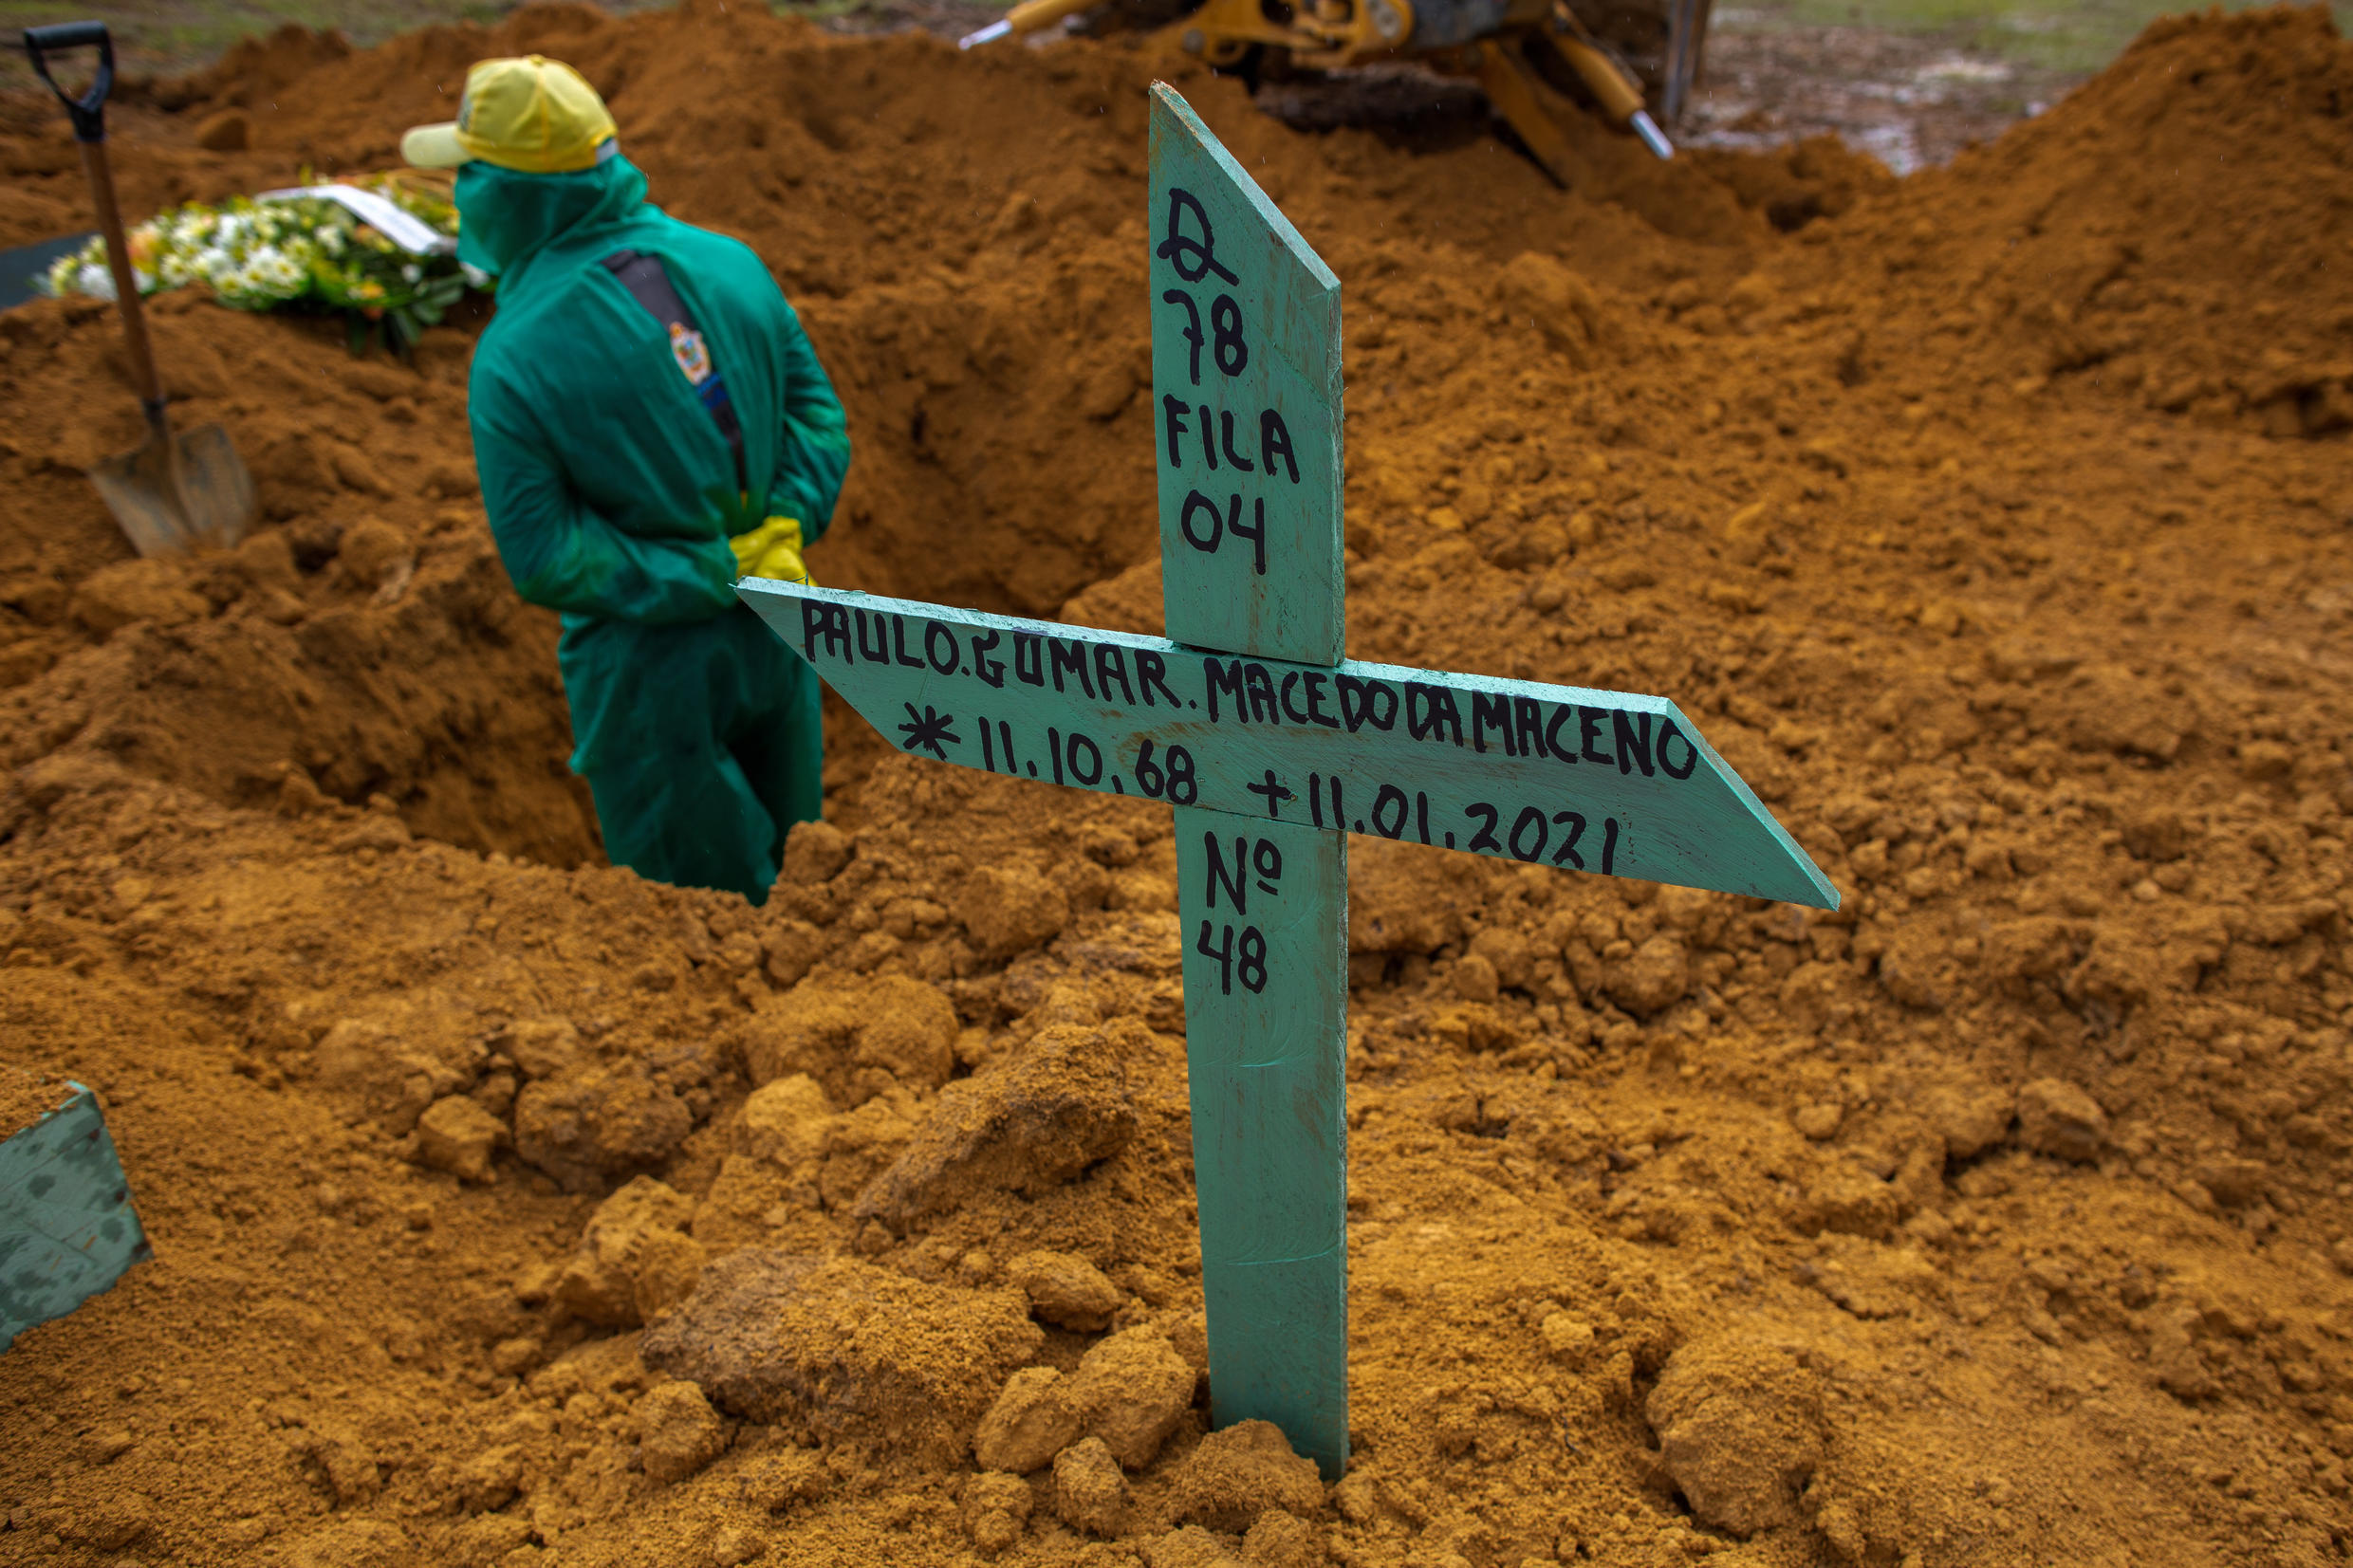 The grave of a Covid-19 victim in Manaus is seen as Brazil records more than 205,000 deaths from Covid-19, second only to the United States